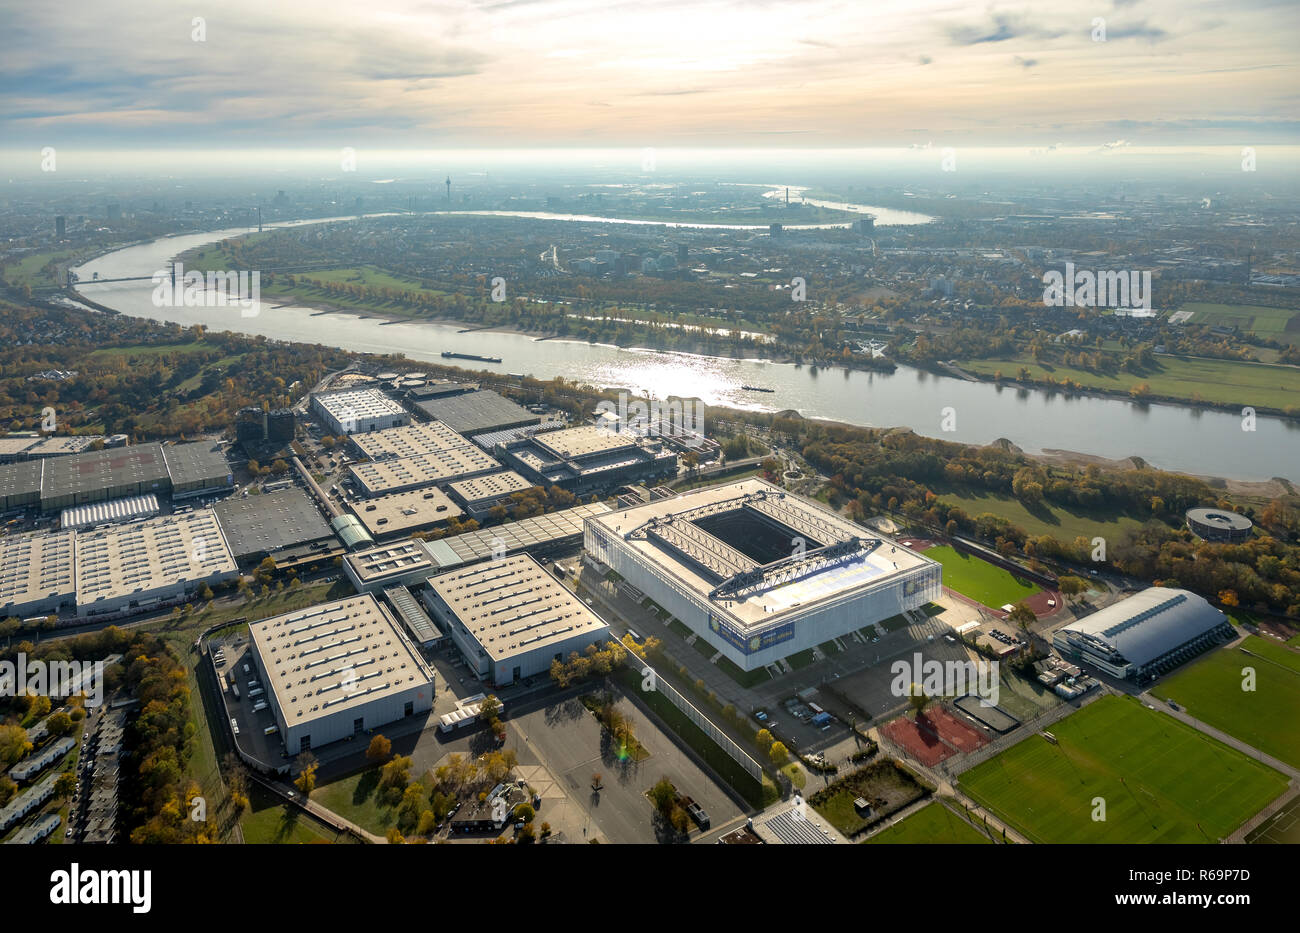 Aerial view, Merkur Spiel-Arena football stadium, Stockum, Düsseldorf, Lower Rhine, North Rhine-Westphalia, Germany - Stock Image